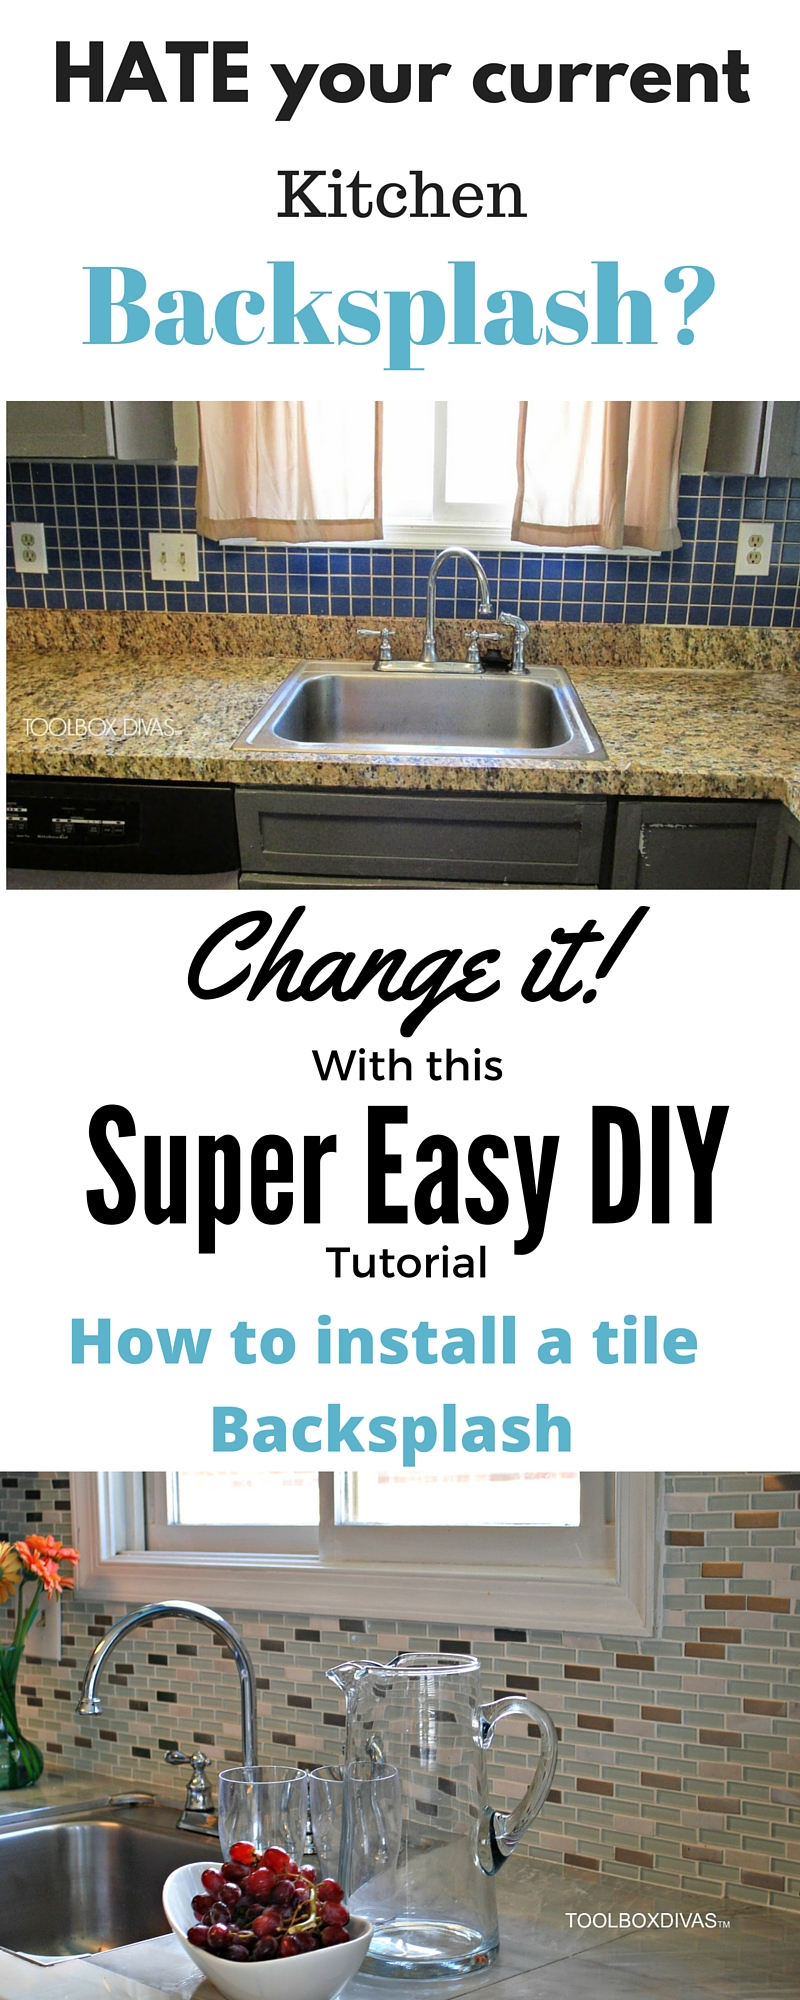 How to install a kitchen tile backsplash the easy way - How to replace backsplash ...